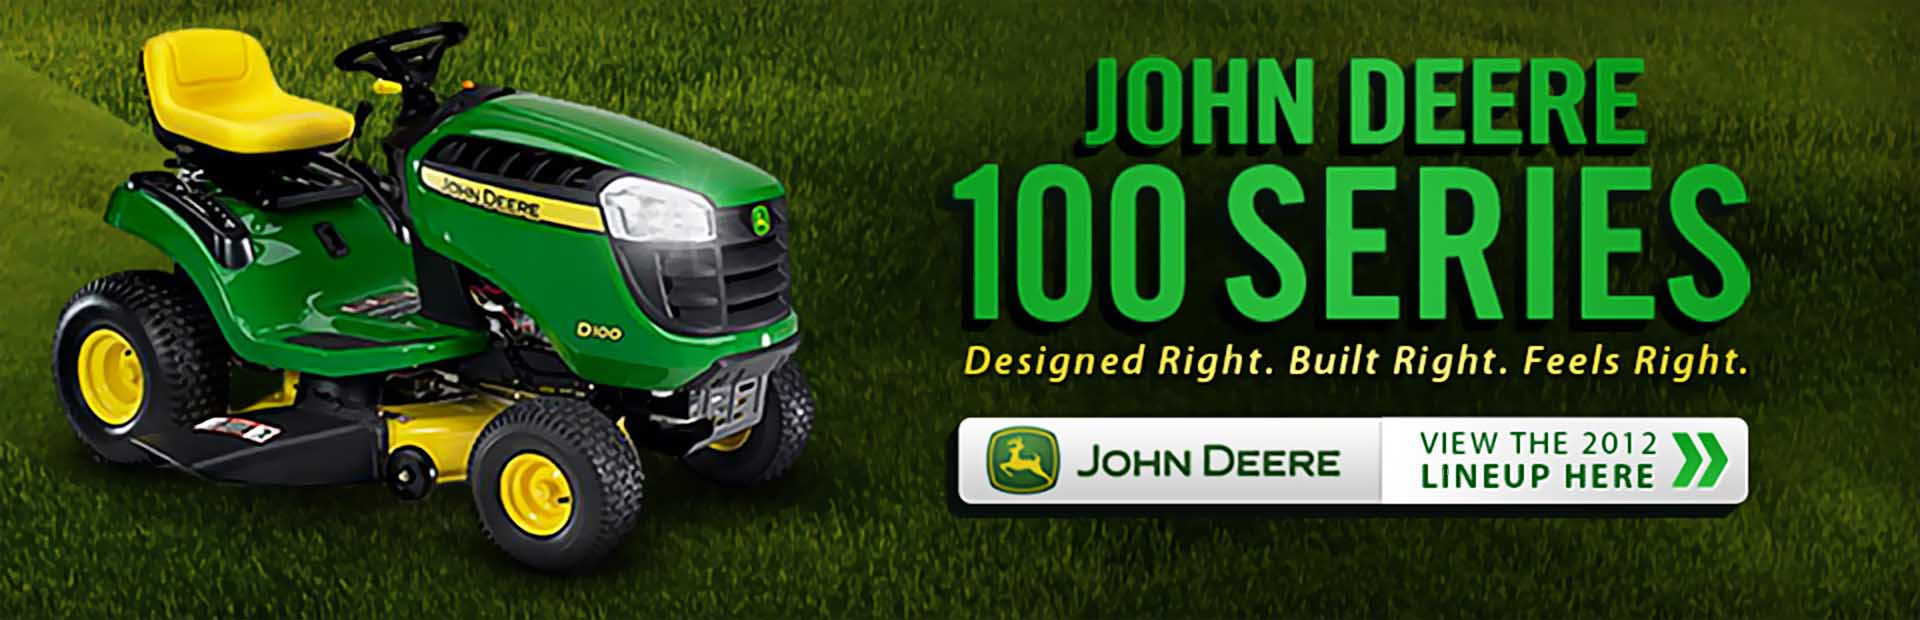 Click here to view the lineup of John Deere 100 Series lawn mowers.